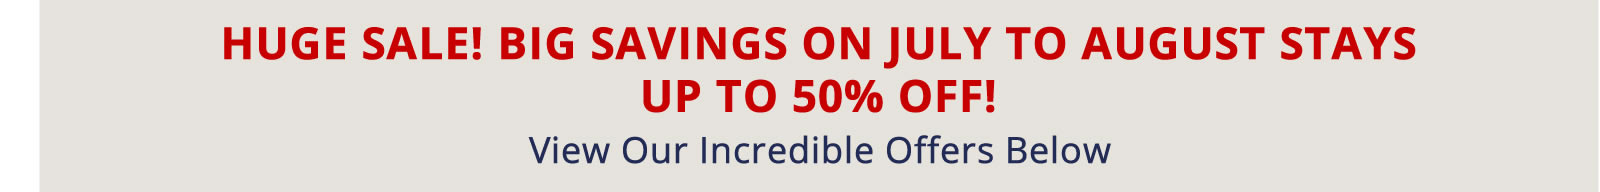 Book Now for Big Savings on July to August Stays. Up to 50% off!